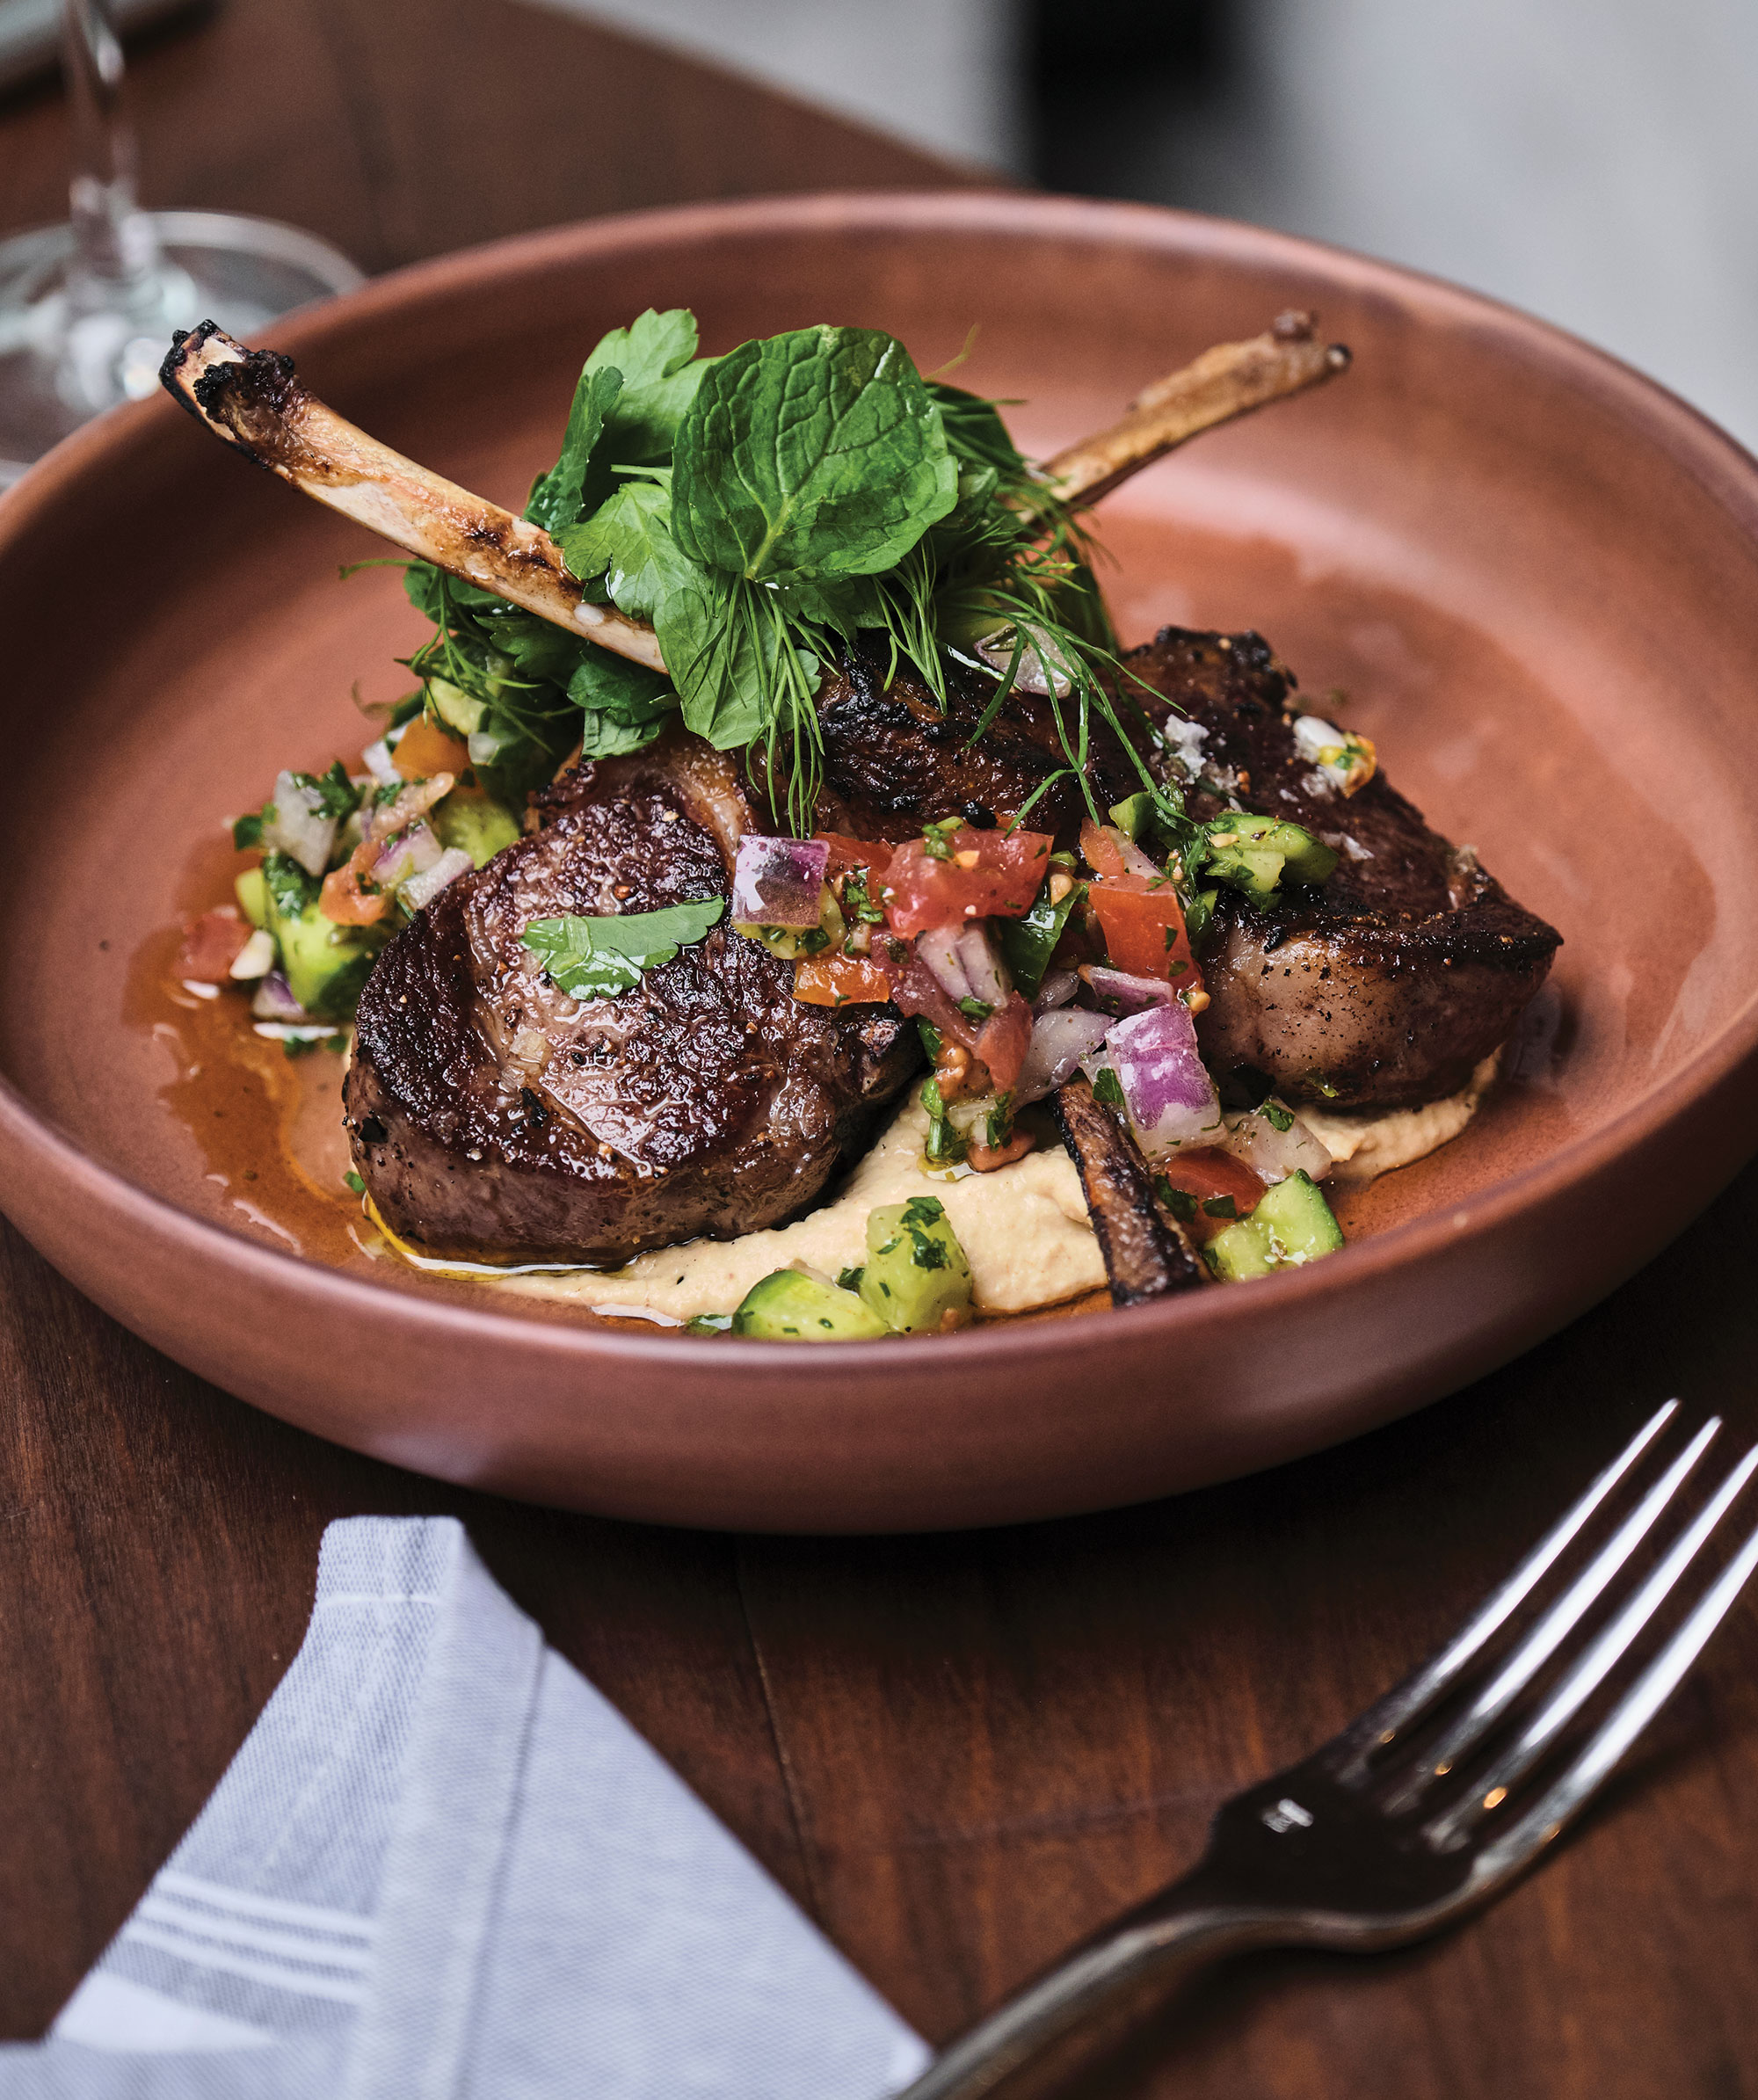 Wood-grilled lamb chops; Photography by Kyle Ledeboer